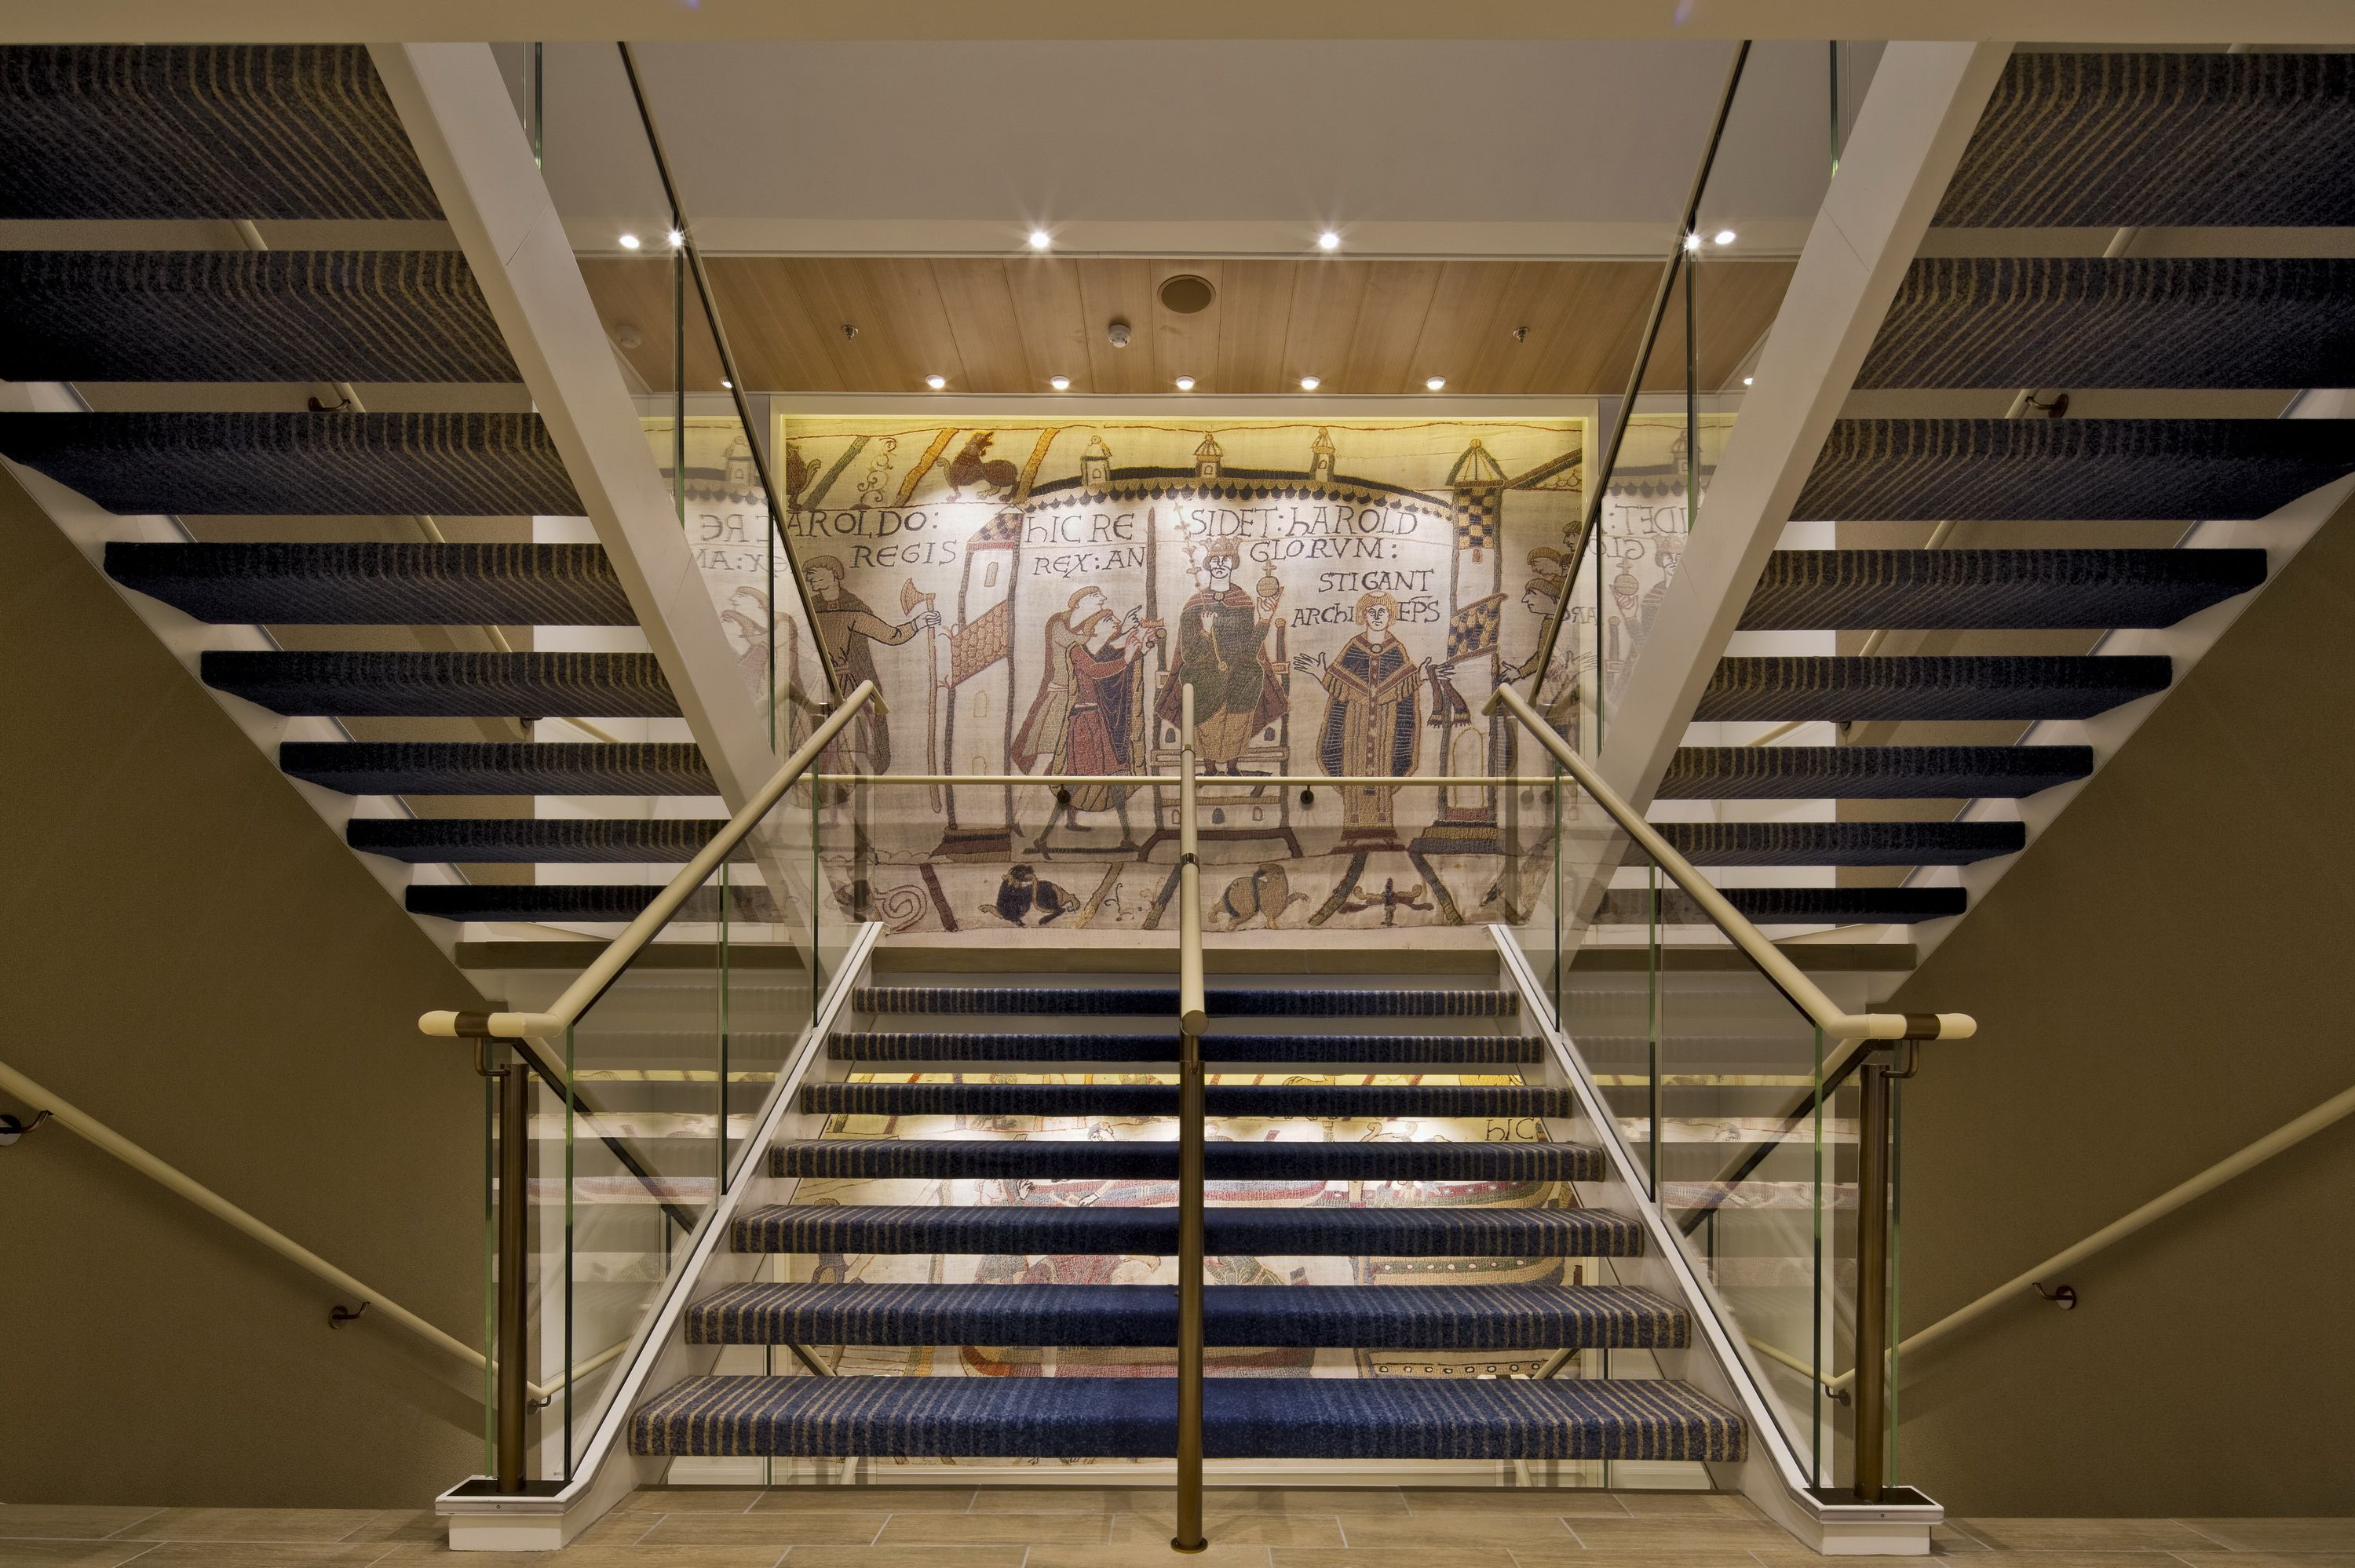 Viking Sea cruise ship stairway and tapestry